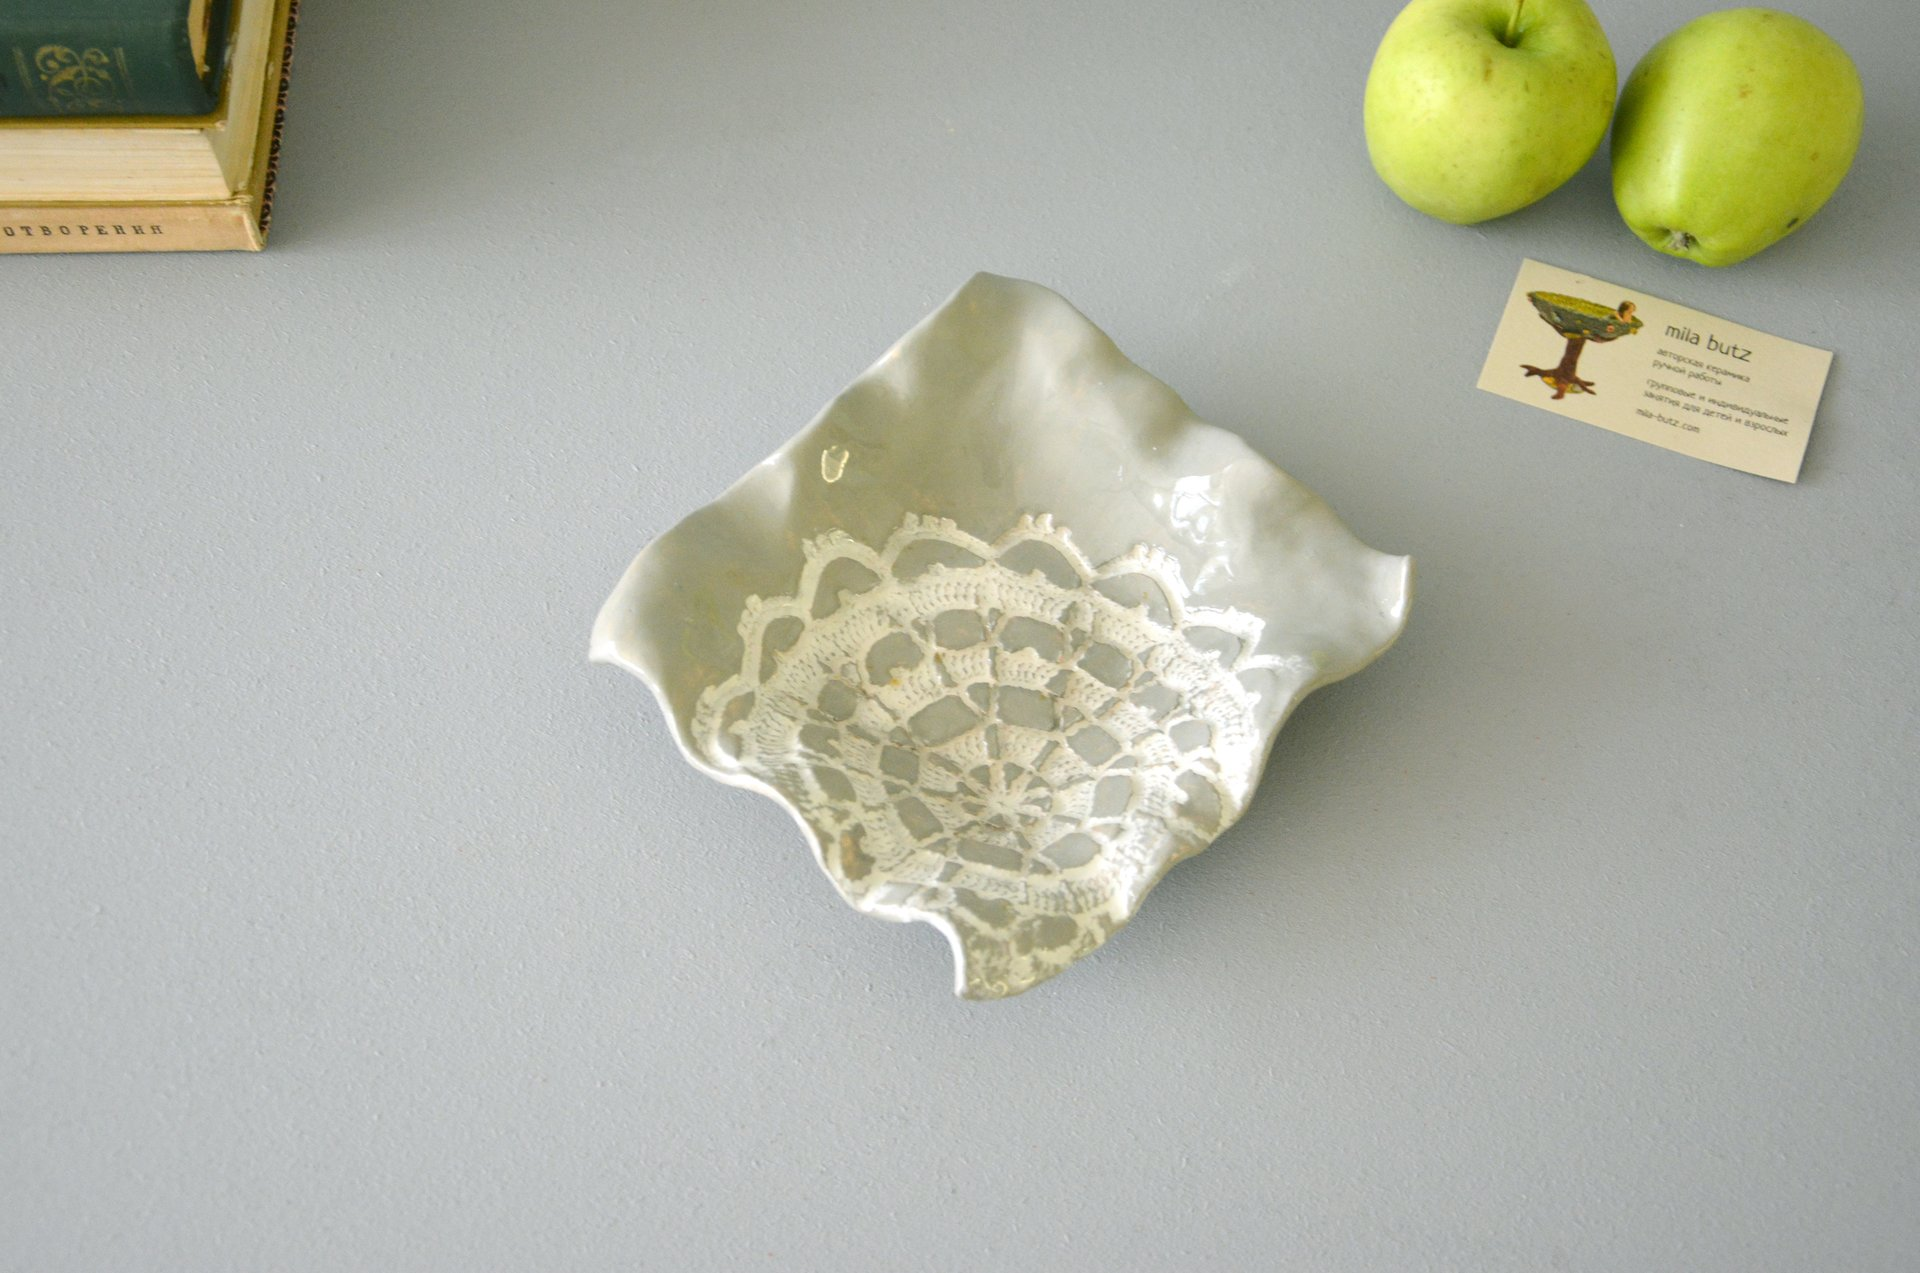 Ceramic square plate of gray color, length, width - 16 cm, height - 4 cm, photo 1 of 4.